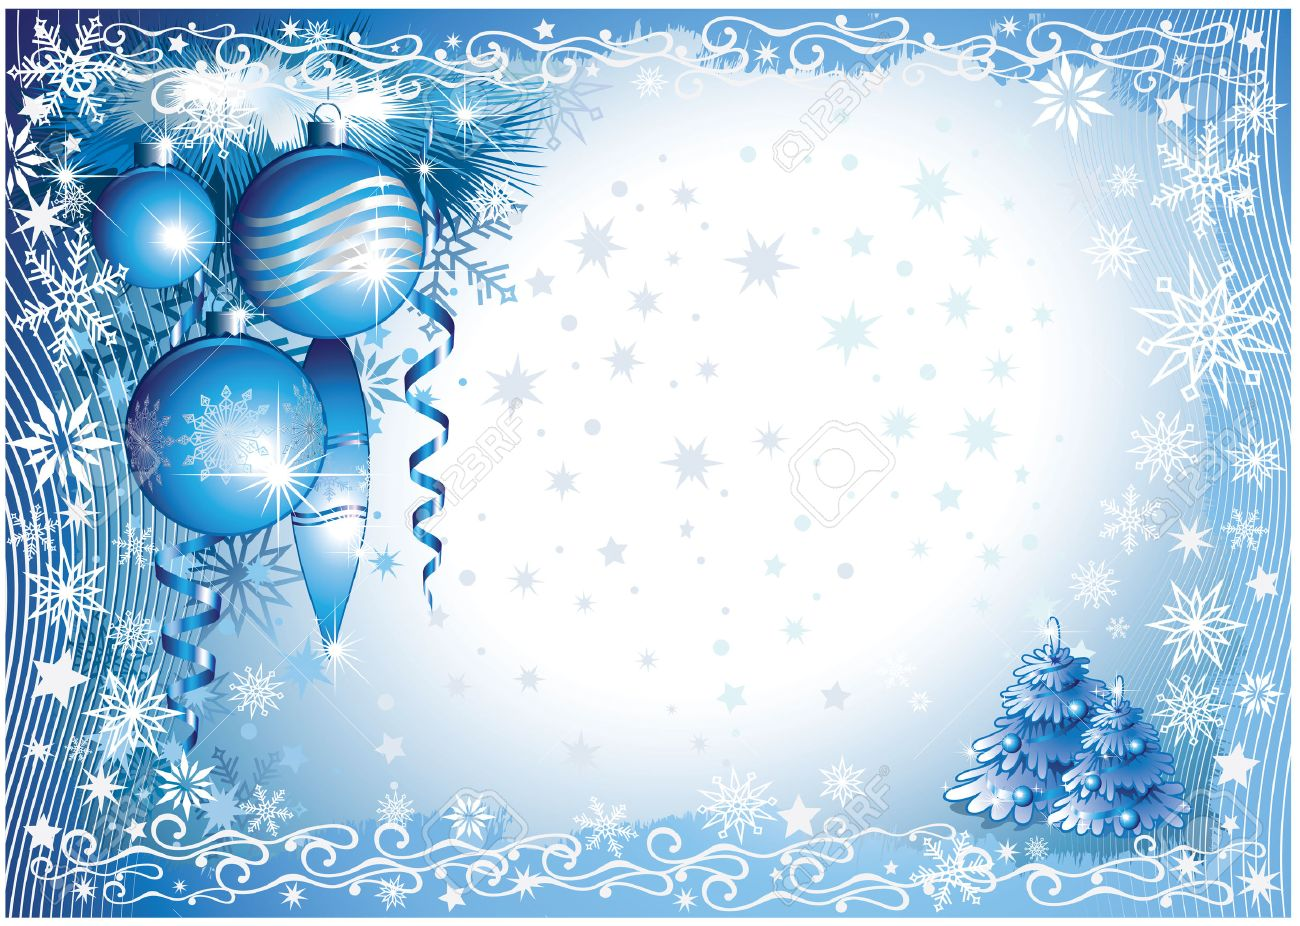 Blue-white Christmas Background Royalty Free Cliparts, Vectors ...